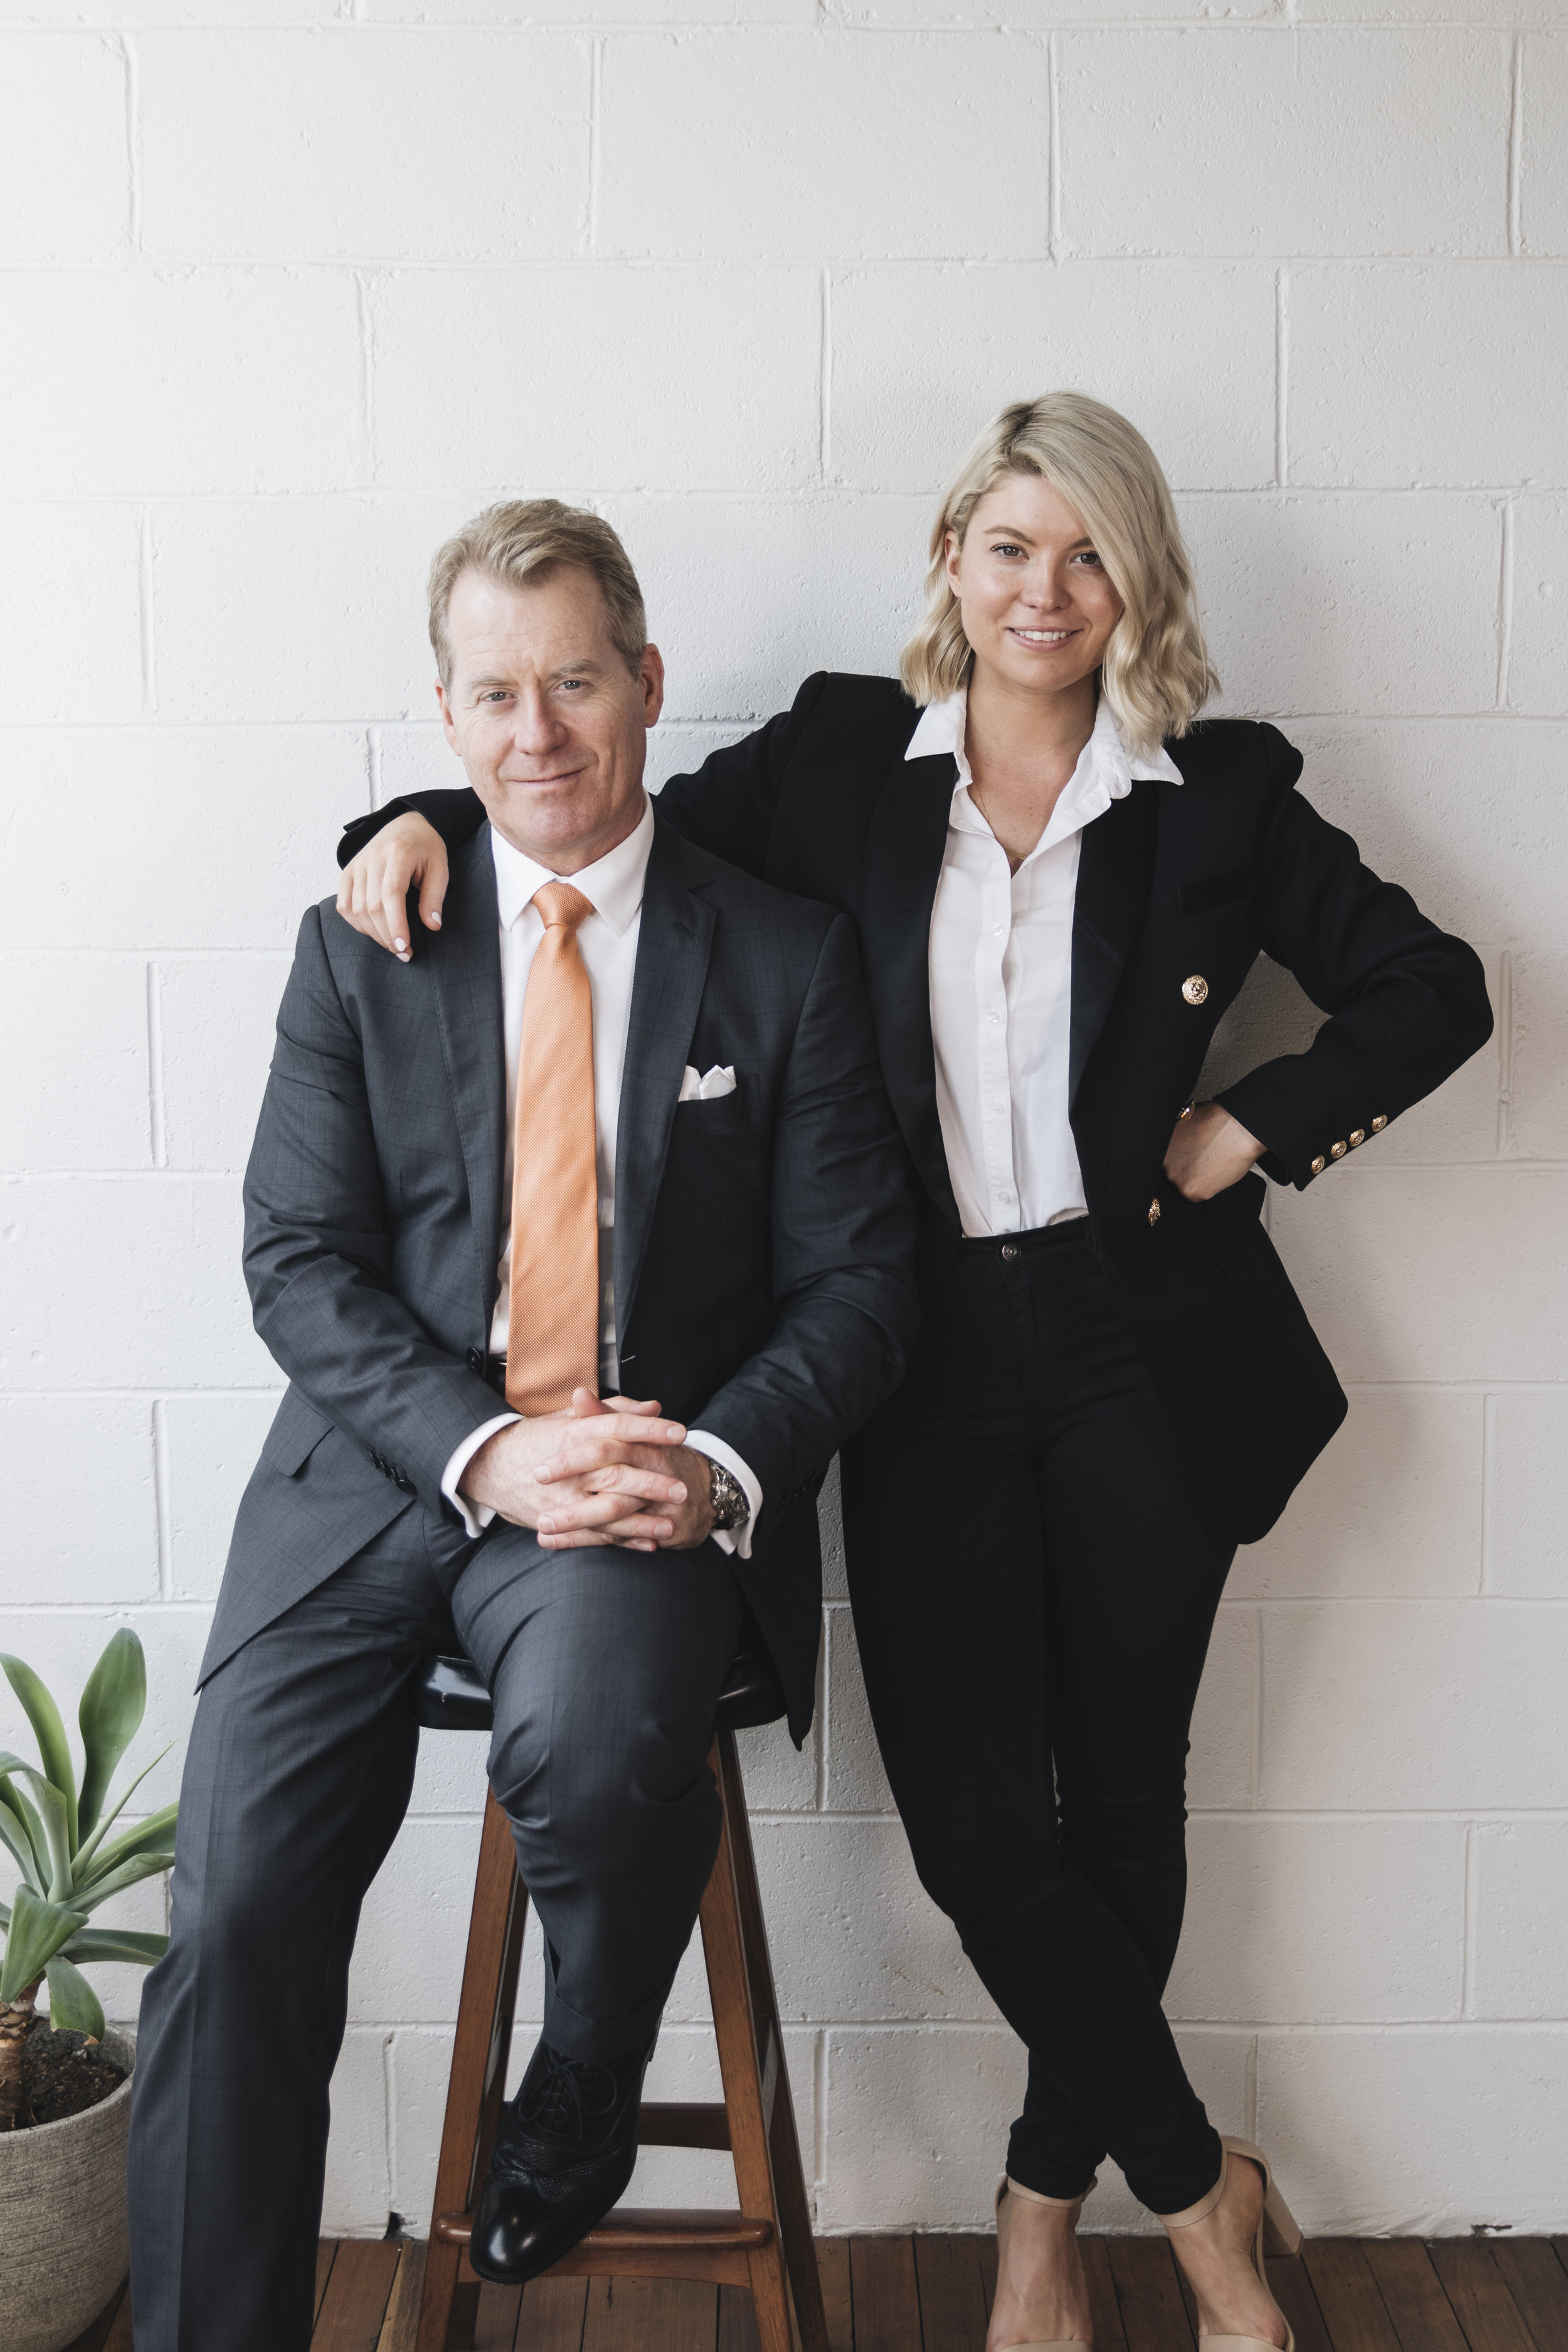 HI, I'M MARTY MOORE - At Your CEO Mentor, my daughter Emma and I are putting my 30+ years of hard-earned business and leadership experience to good use: helping people like you to unlock the secrets of true leadership success.I went from university dropout to CEO of a multi billion dollar company and now I want to share my success formula with you.Our purpose is to improve the quality of leaders globally. Join us and be part of the journey.Marty